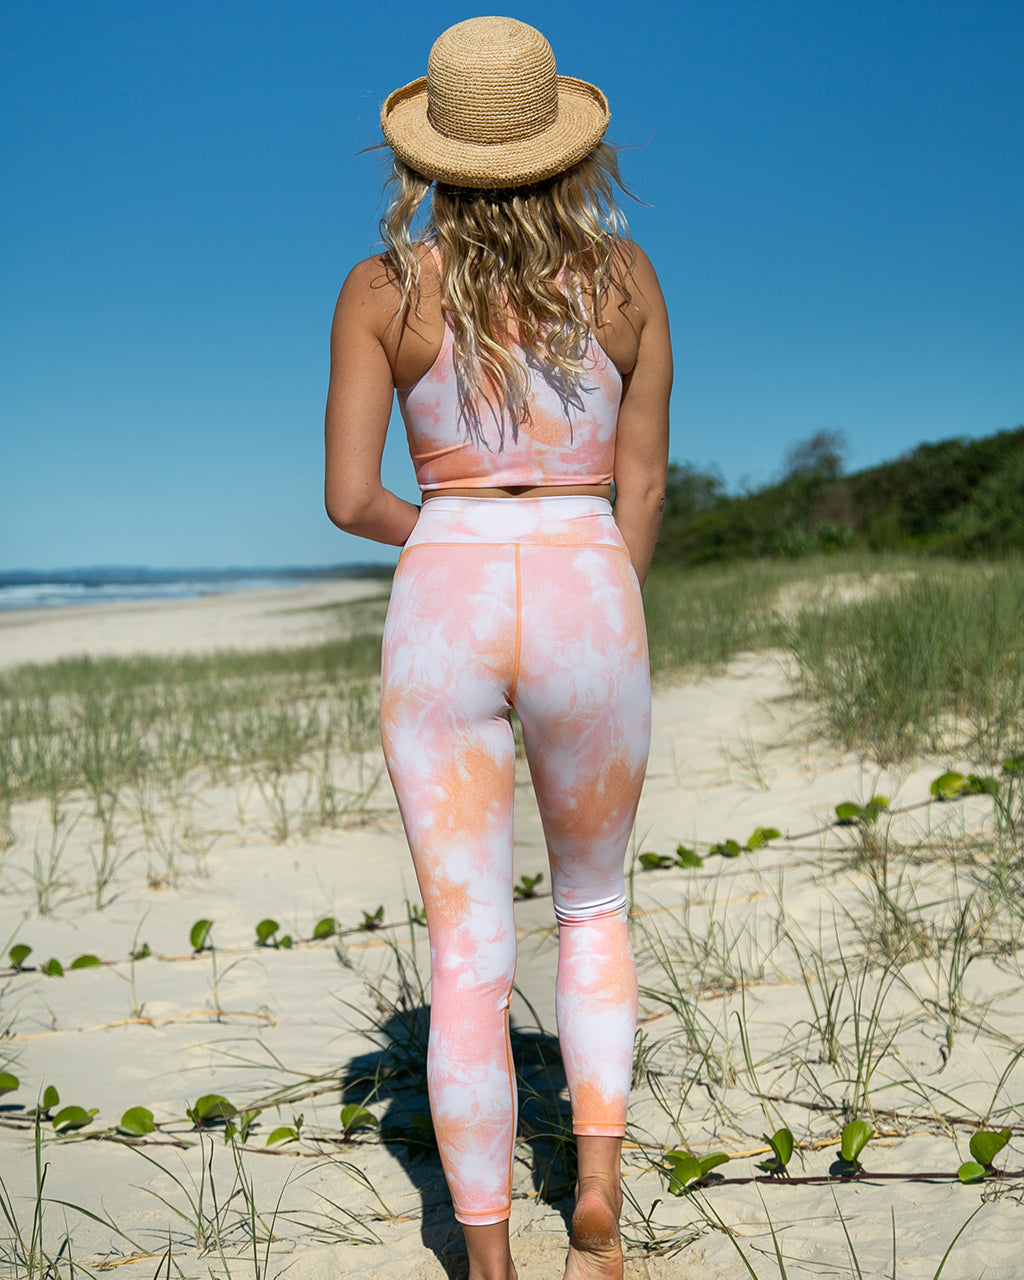 model shown wearing sherbet tie dye leggings